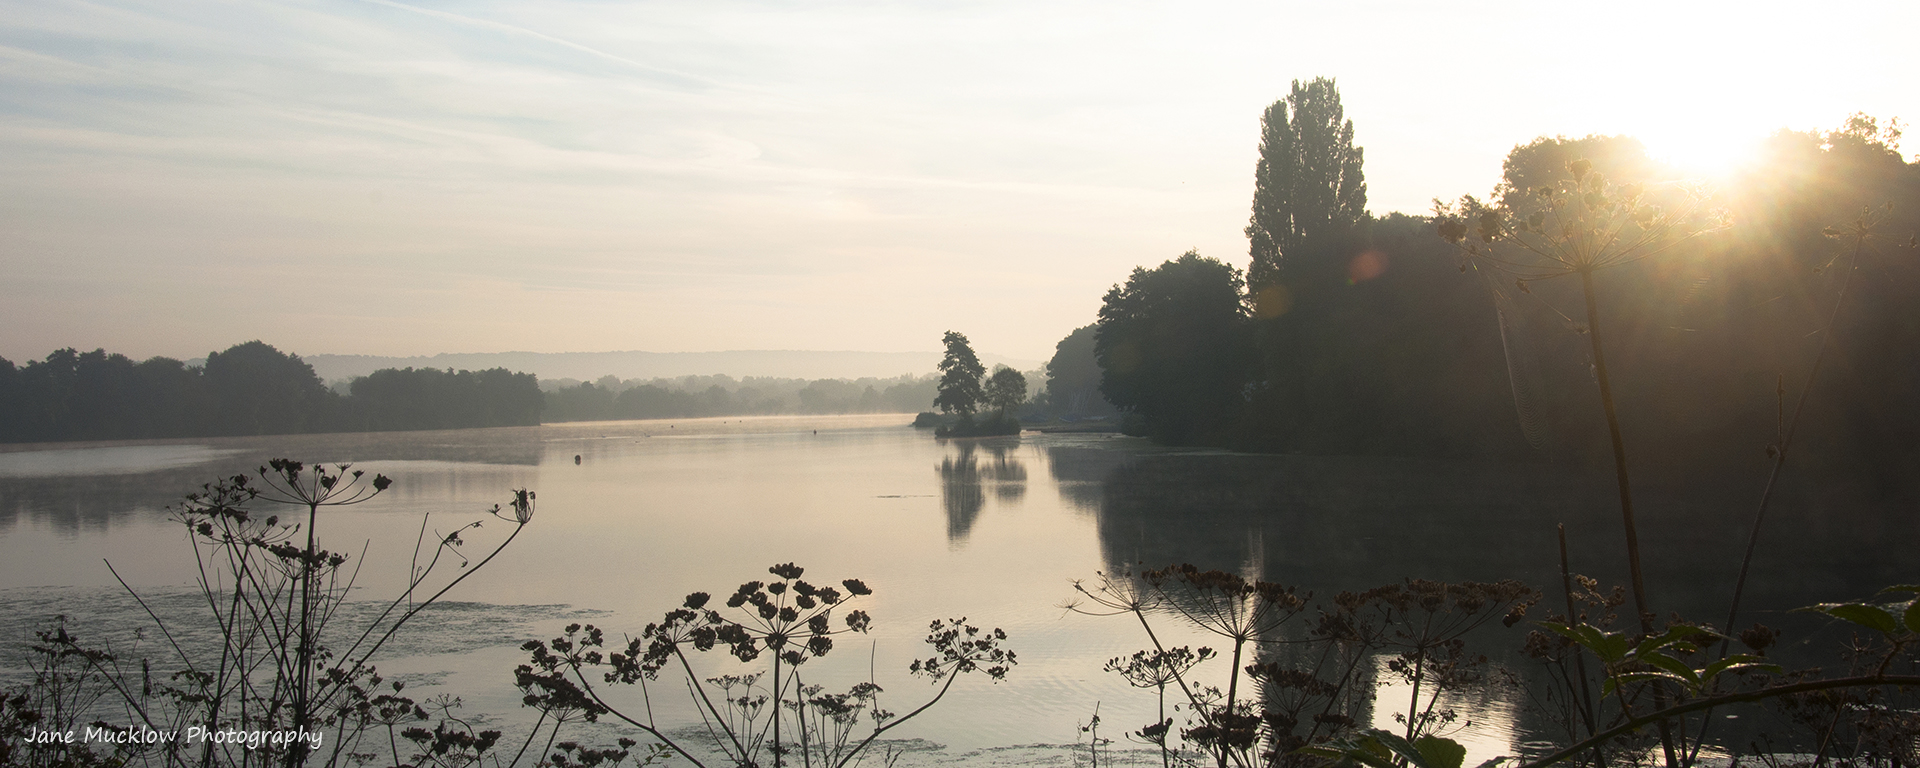 Photo by Jane Mucklow of a misty sunrise over Chipstead Lake, Sevenoaks, Kent, available as a canvas for your wall.